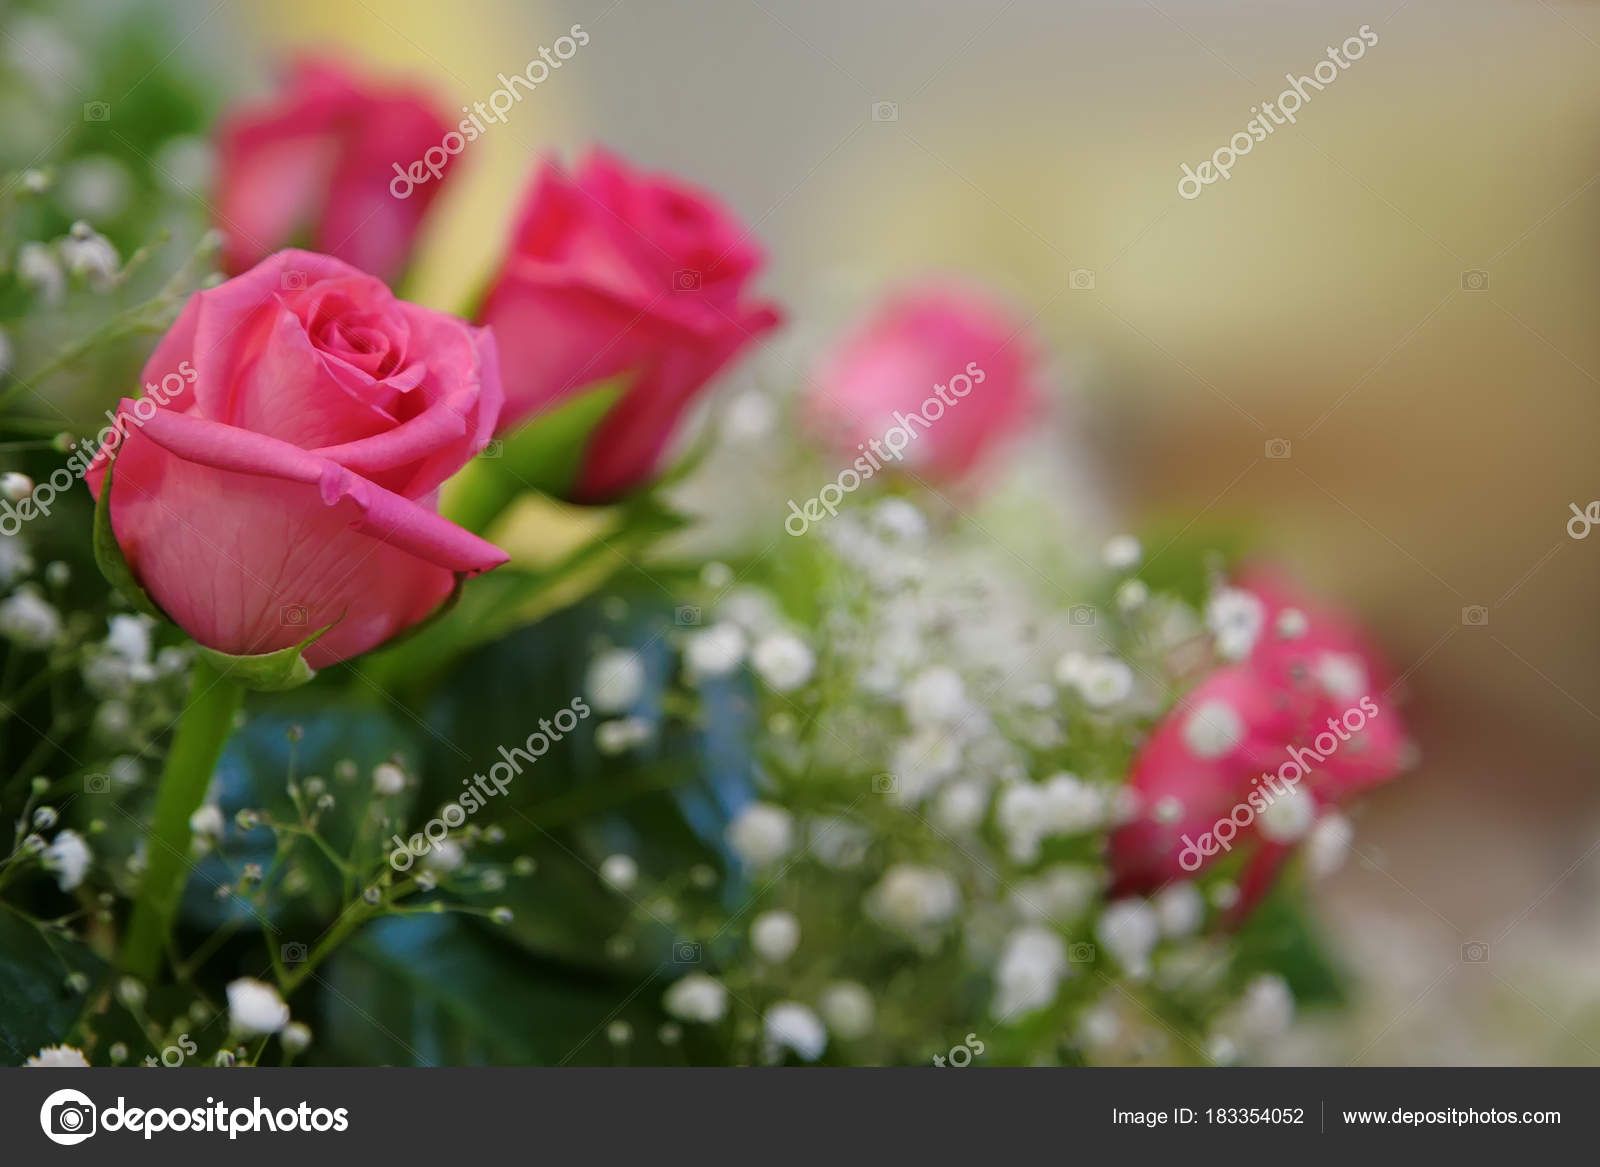 A Bouquet Of Roses With Small White Flowers Stock Photo